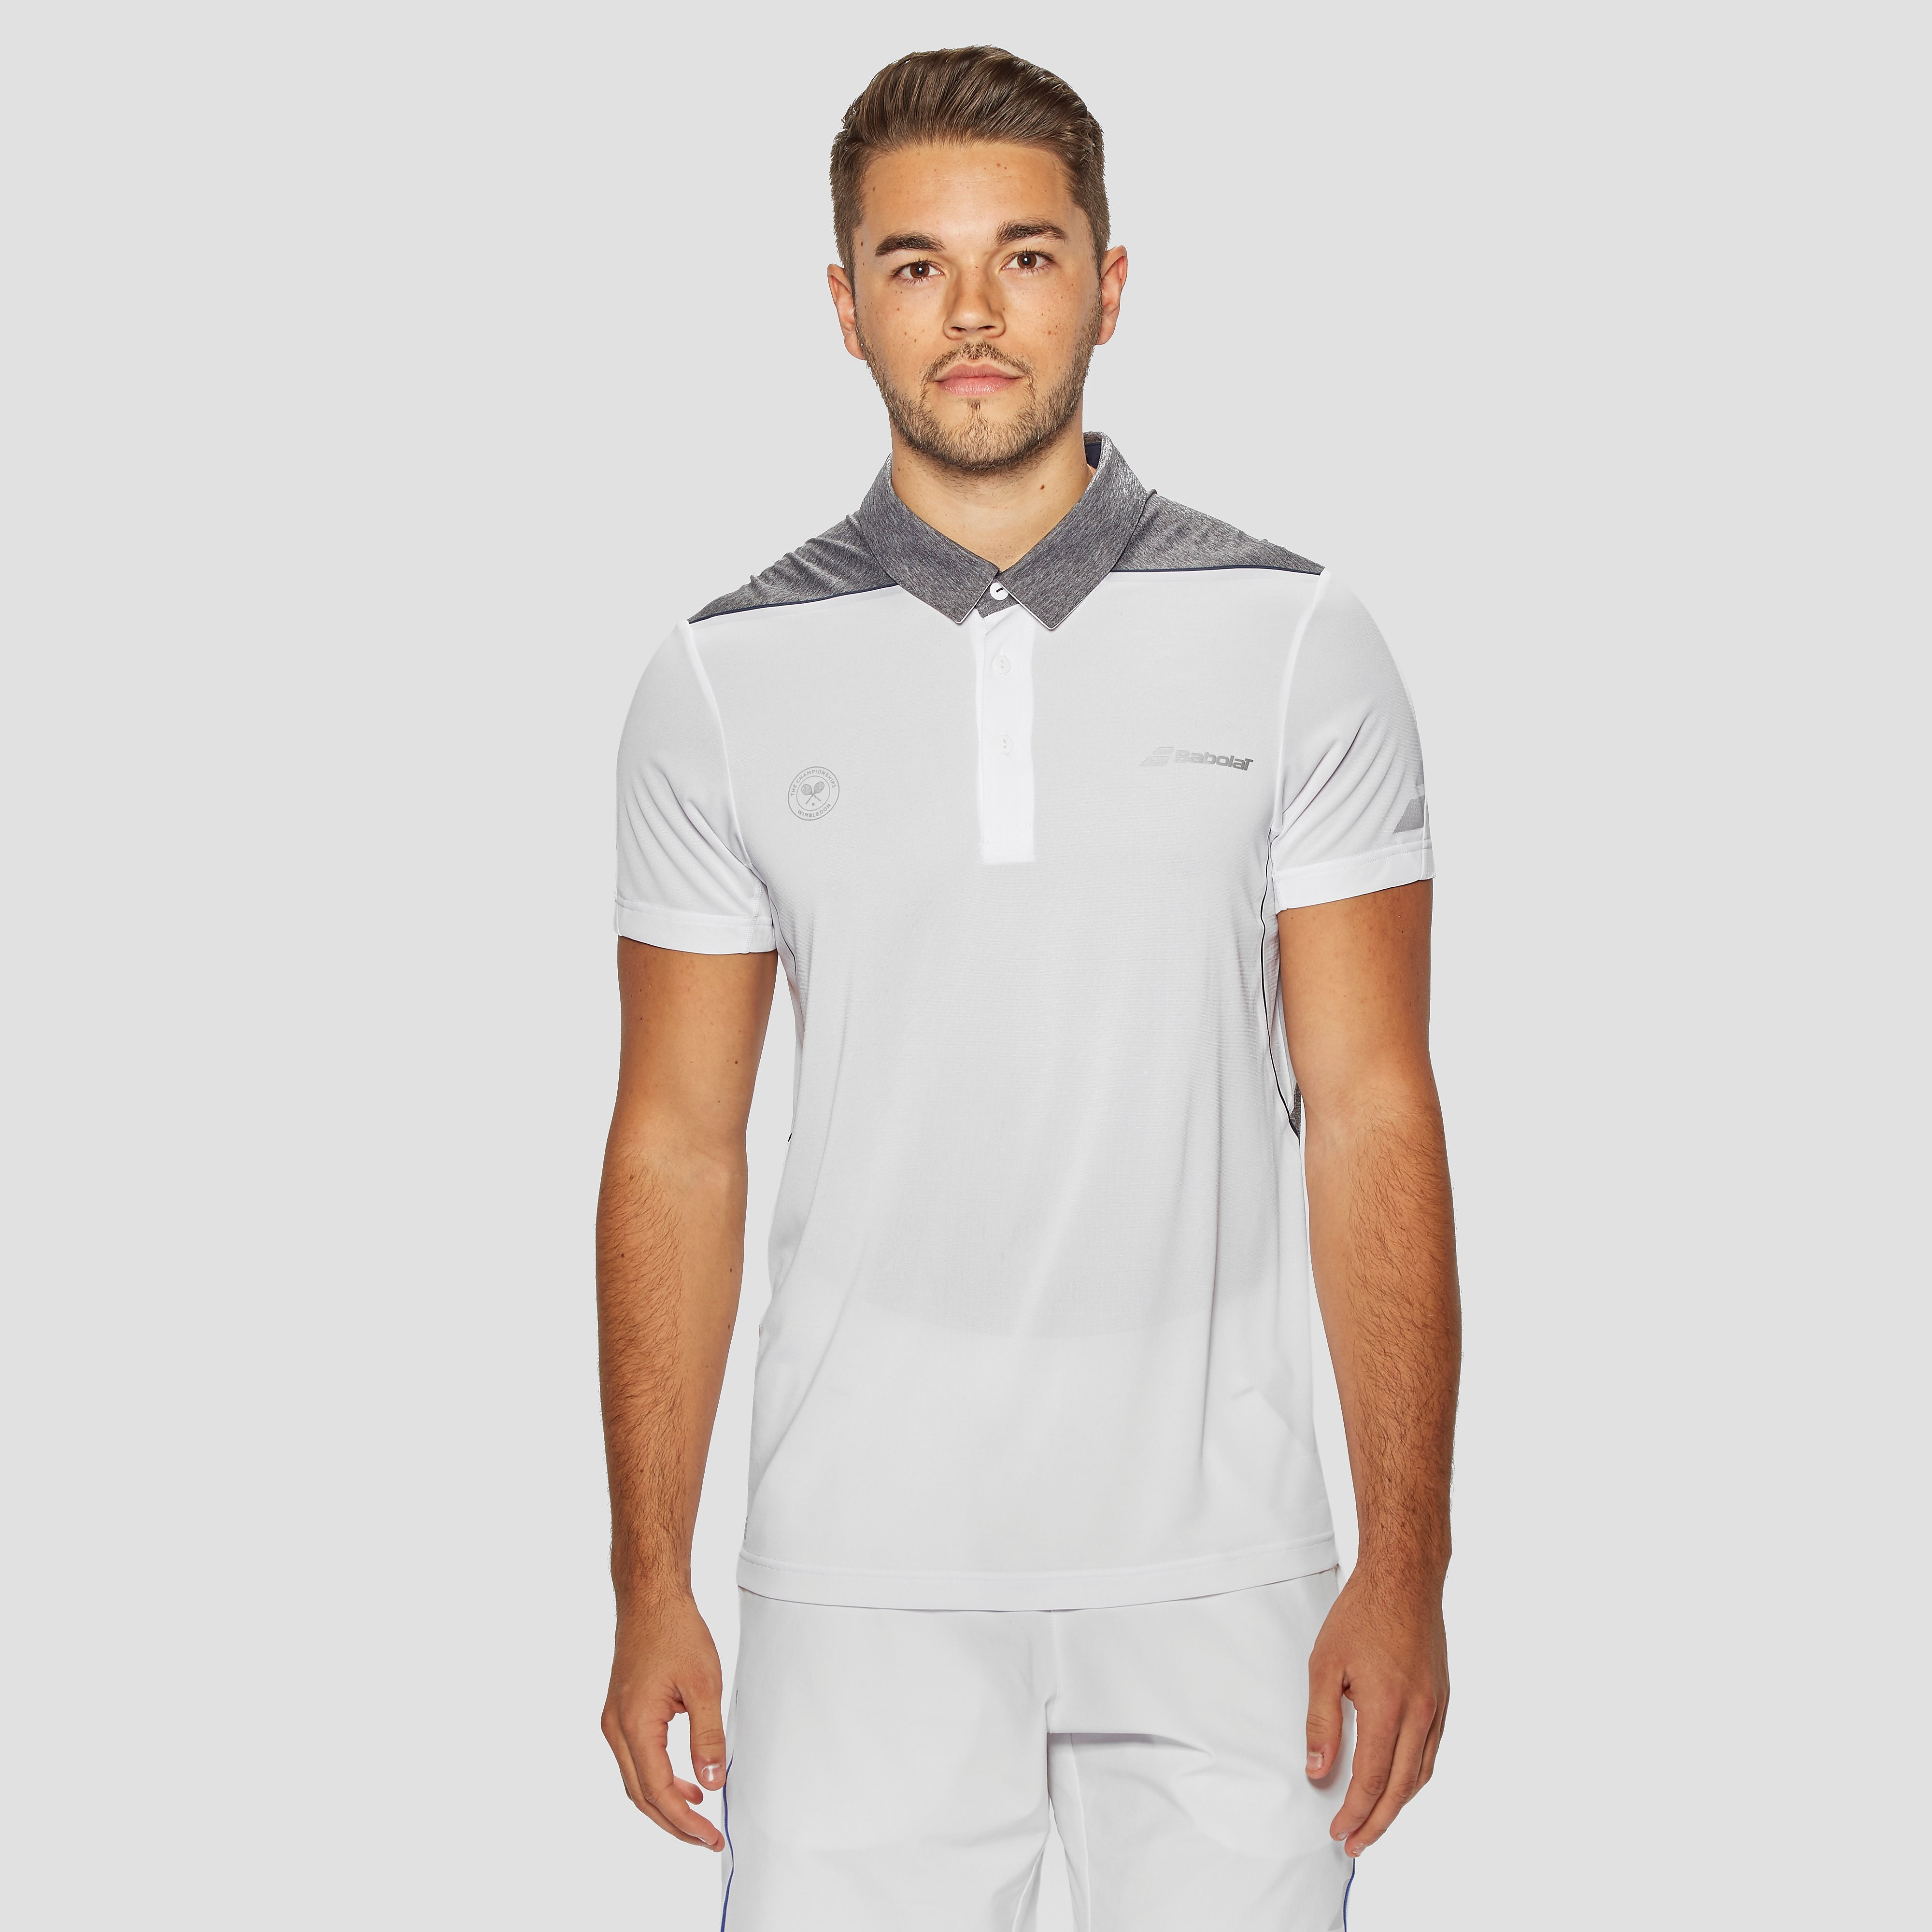 Babolat Wimbledon Performance Men's  Polo Shirt